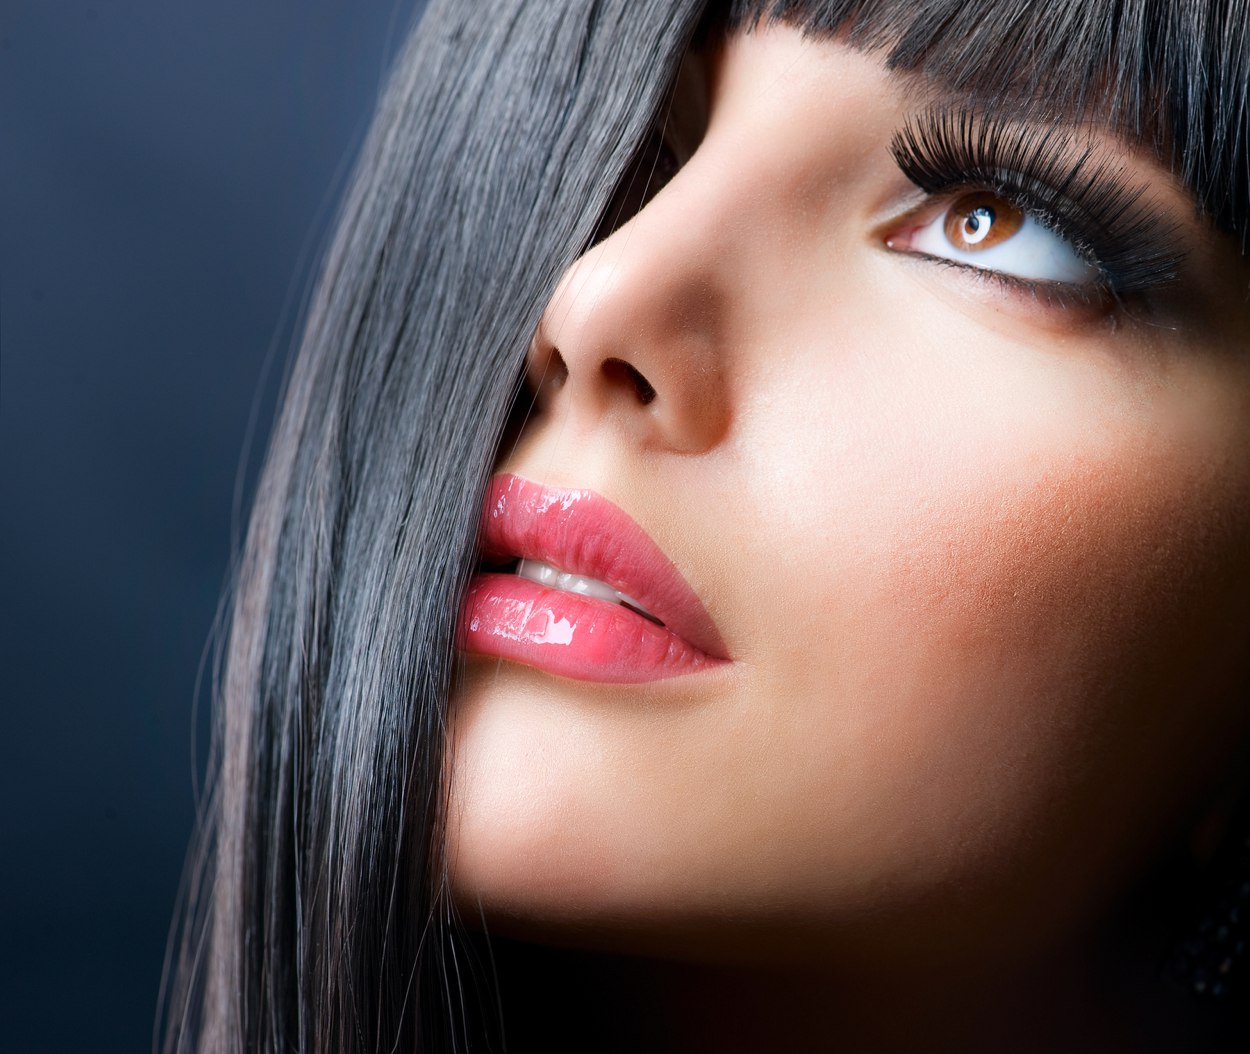 Top Quality Hair Products in Cherry Creek, Denver